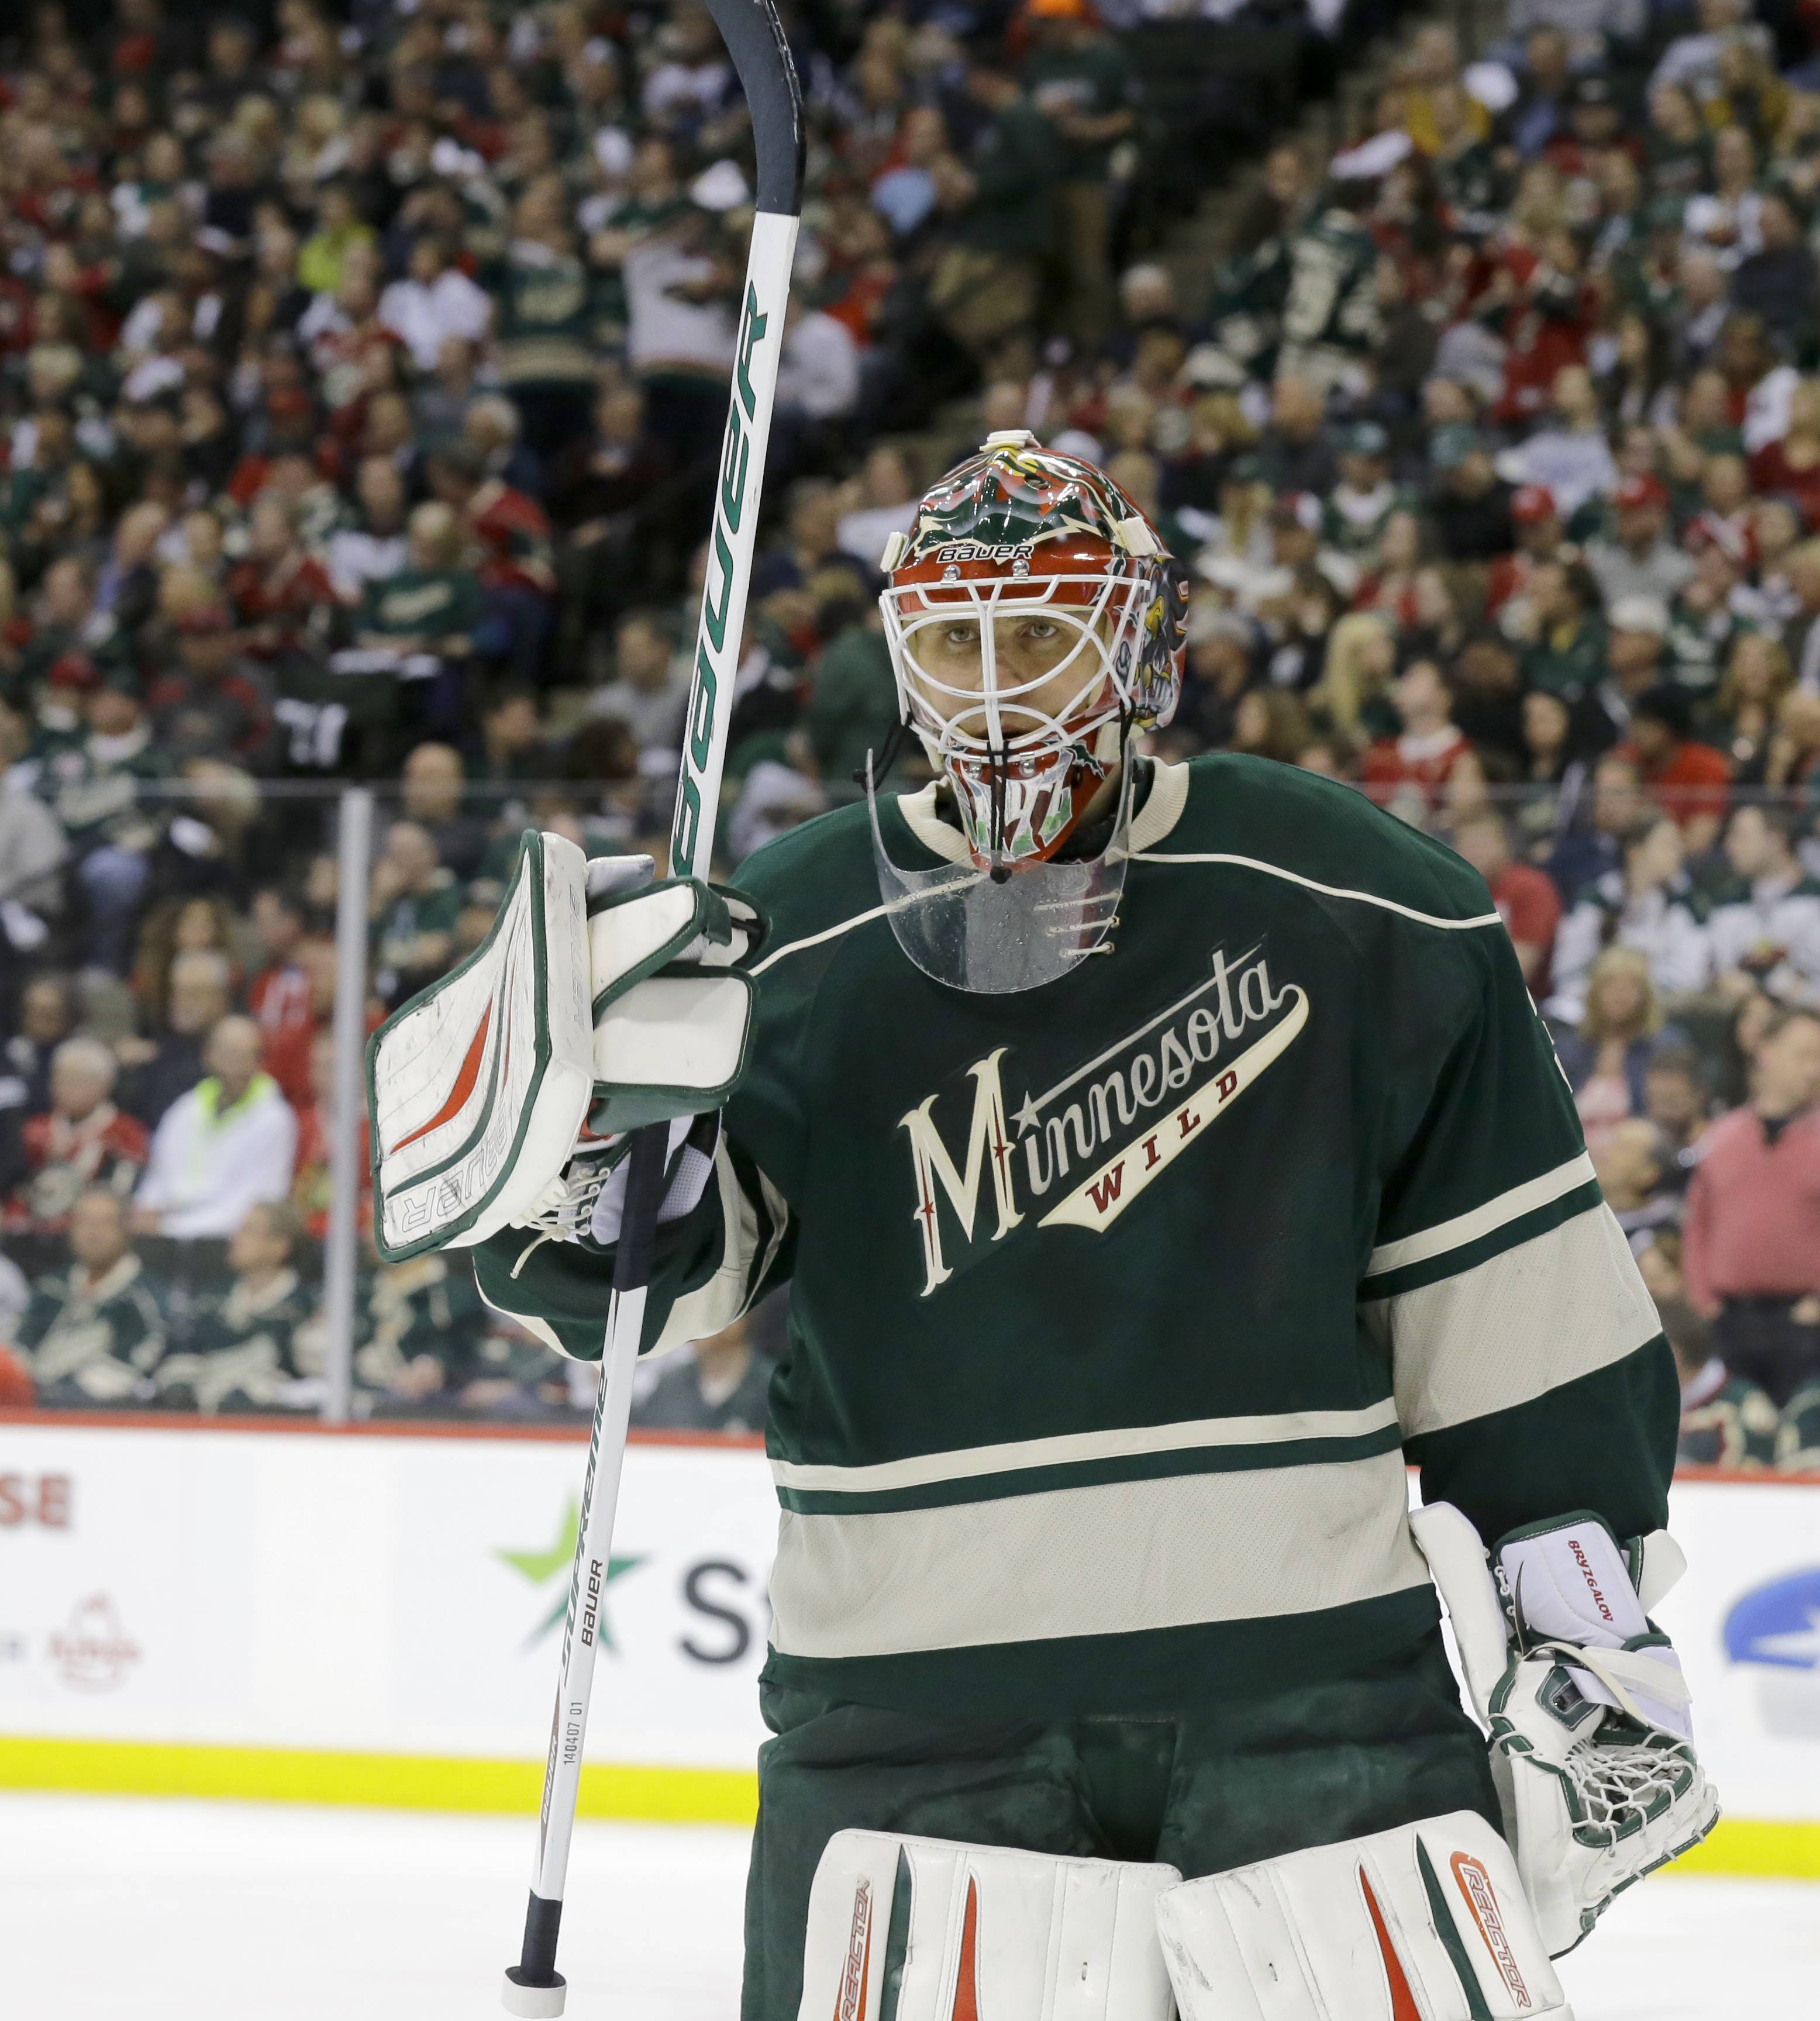 Minnesota Wild goalie Ilya Bryzgalov skates away from the net during a timeout during the second period of Game 3.